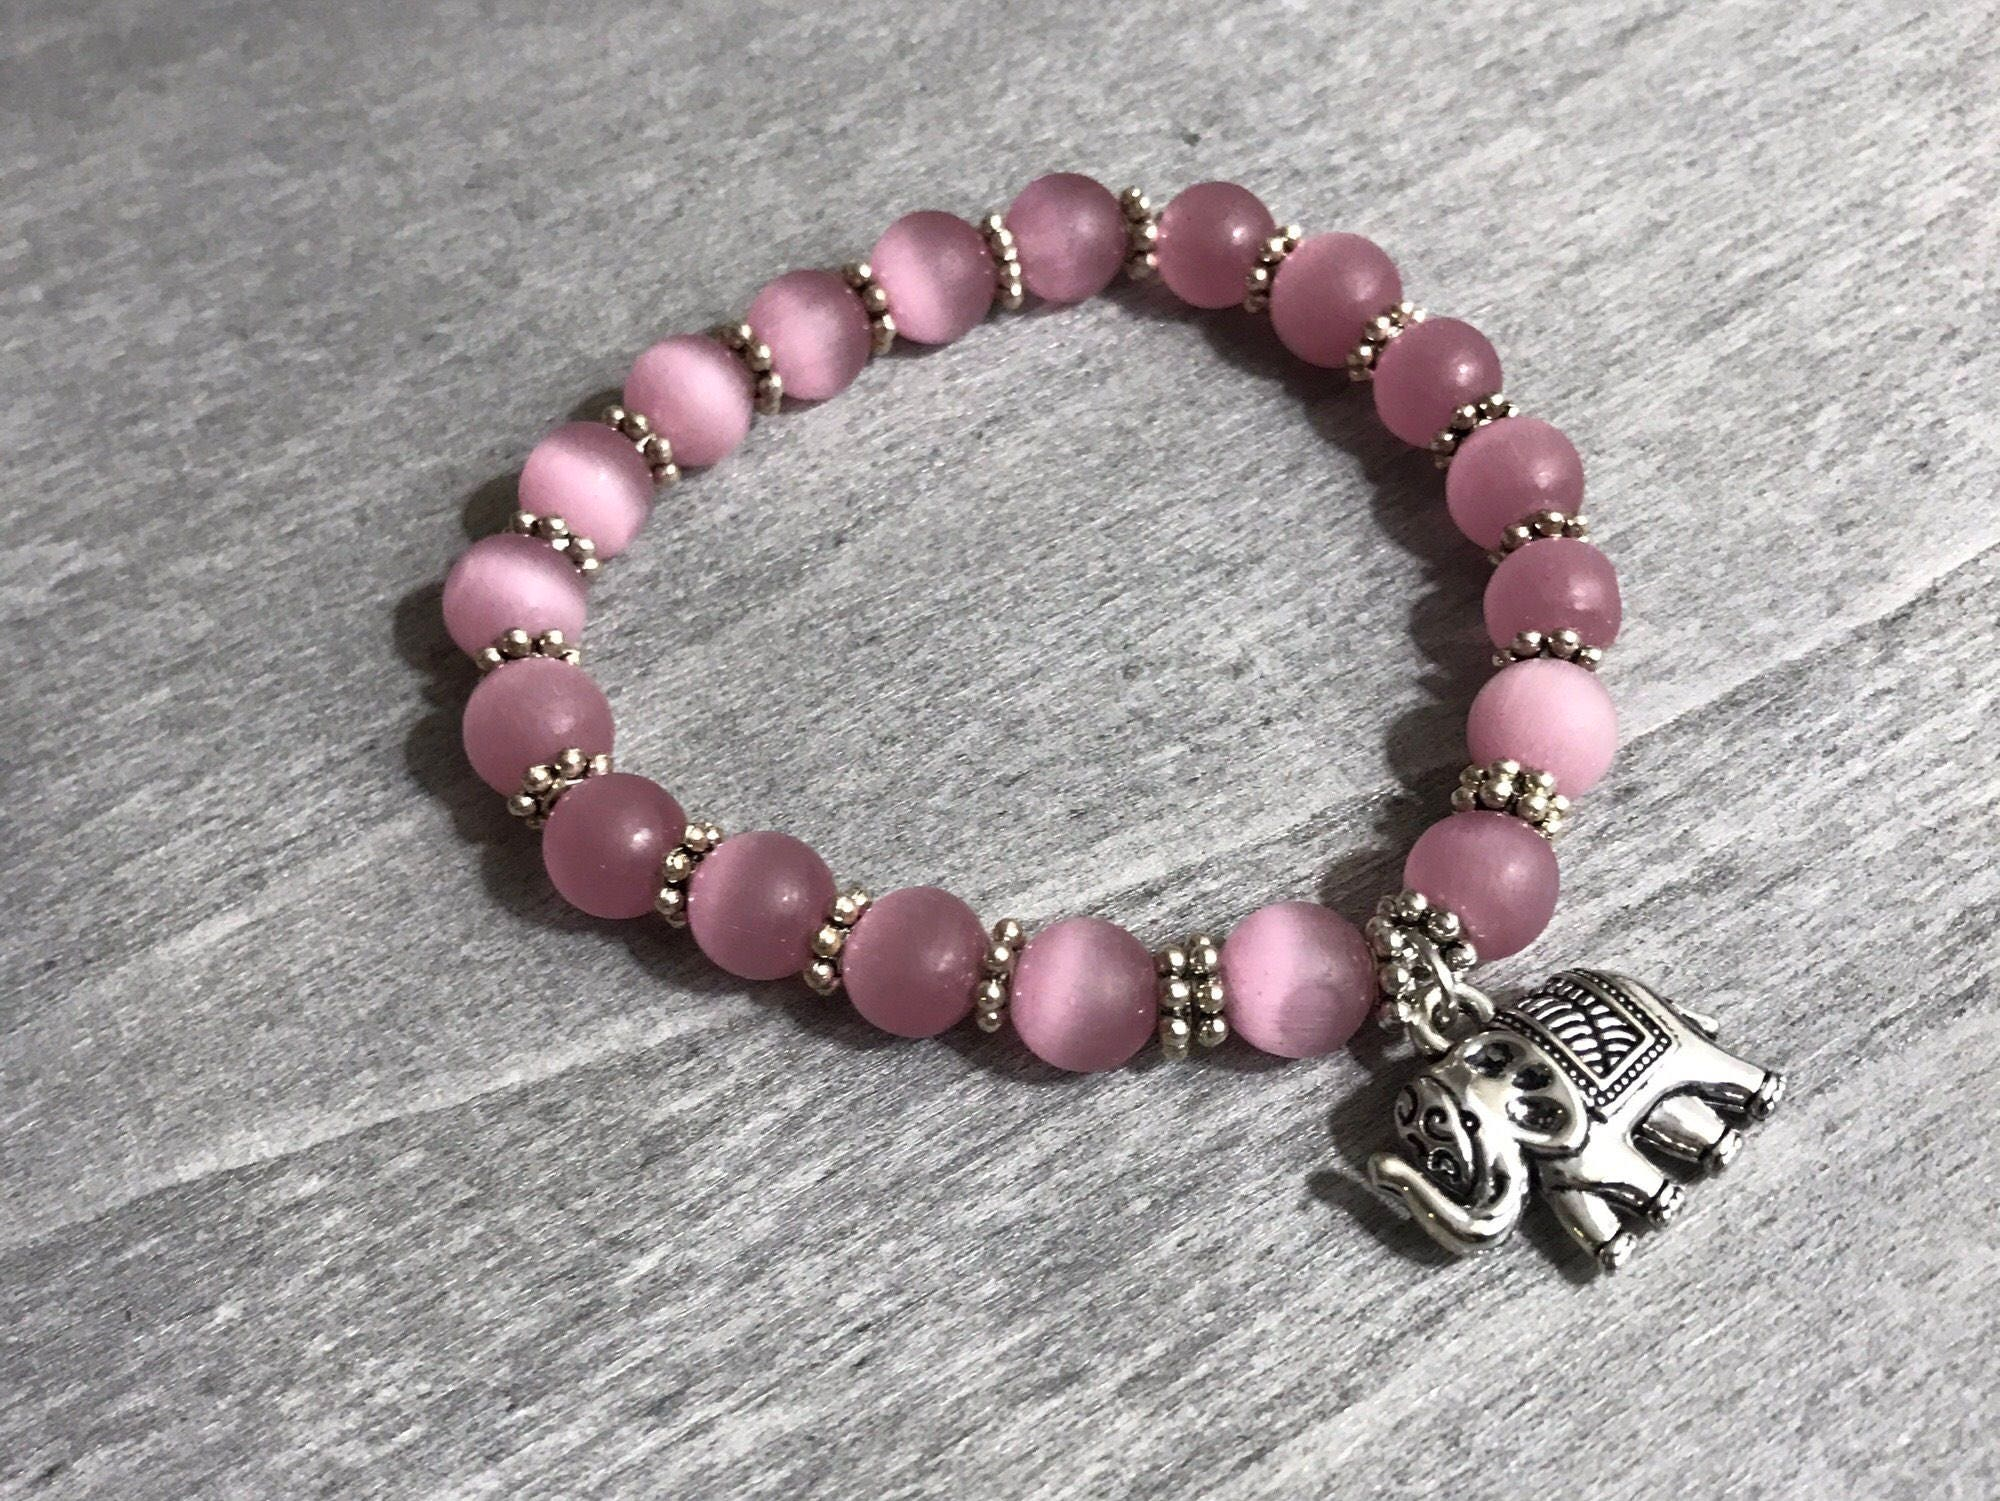 of energy femininity luck sterling infused mother bracelet master iridescent accents calm pearl good bead level at silver intuition reiki with store